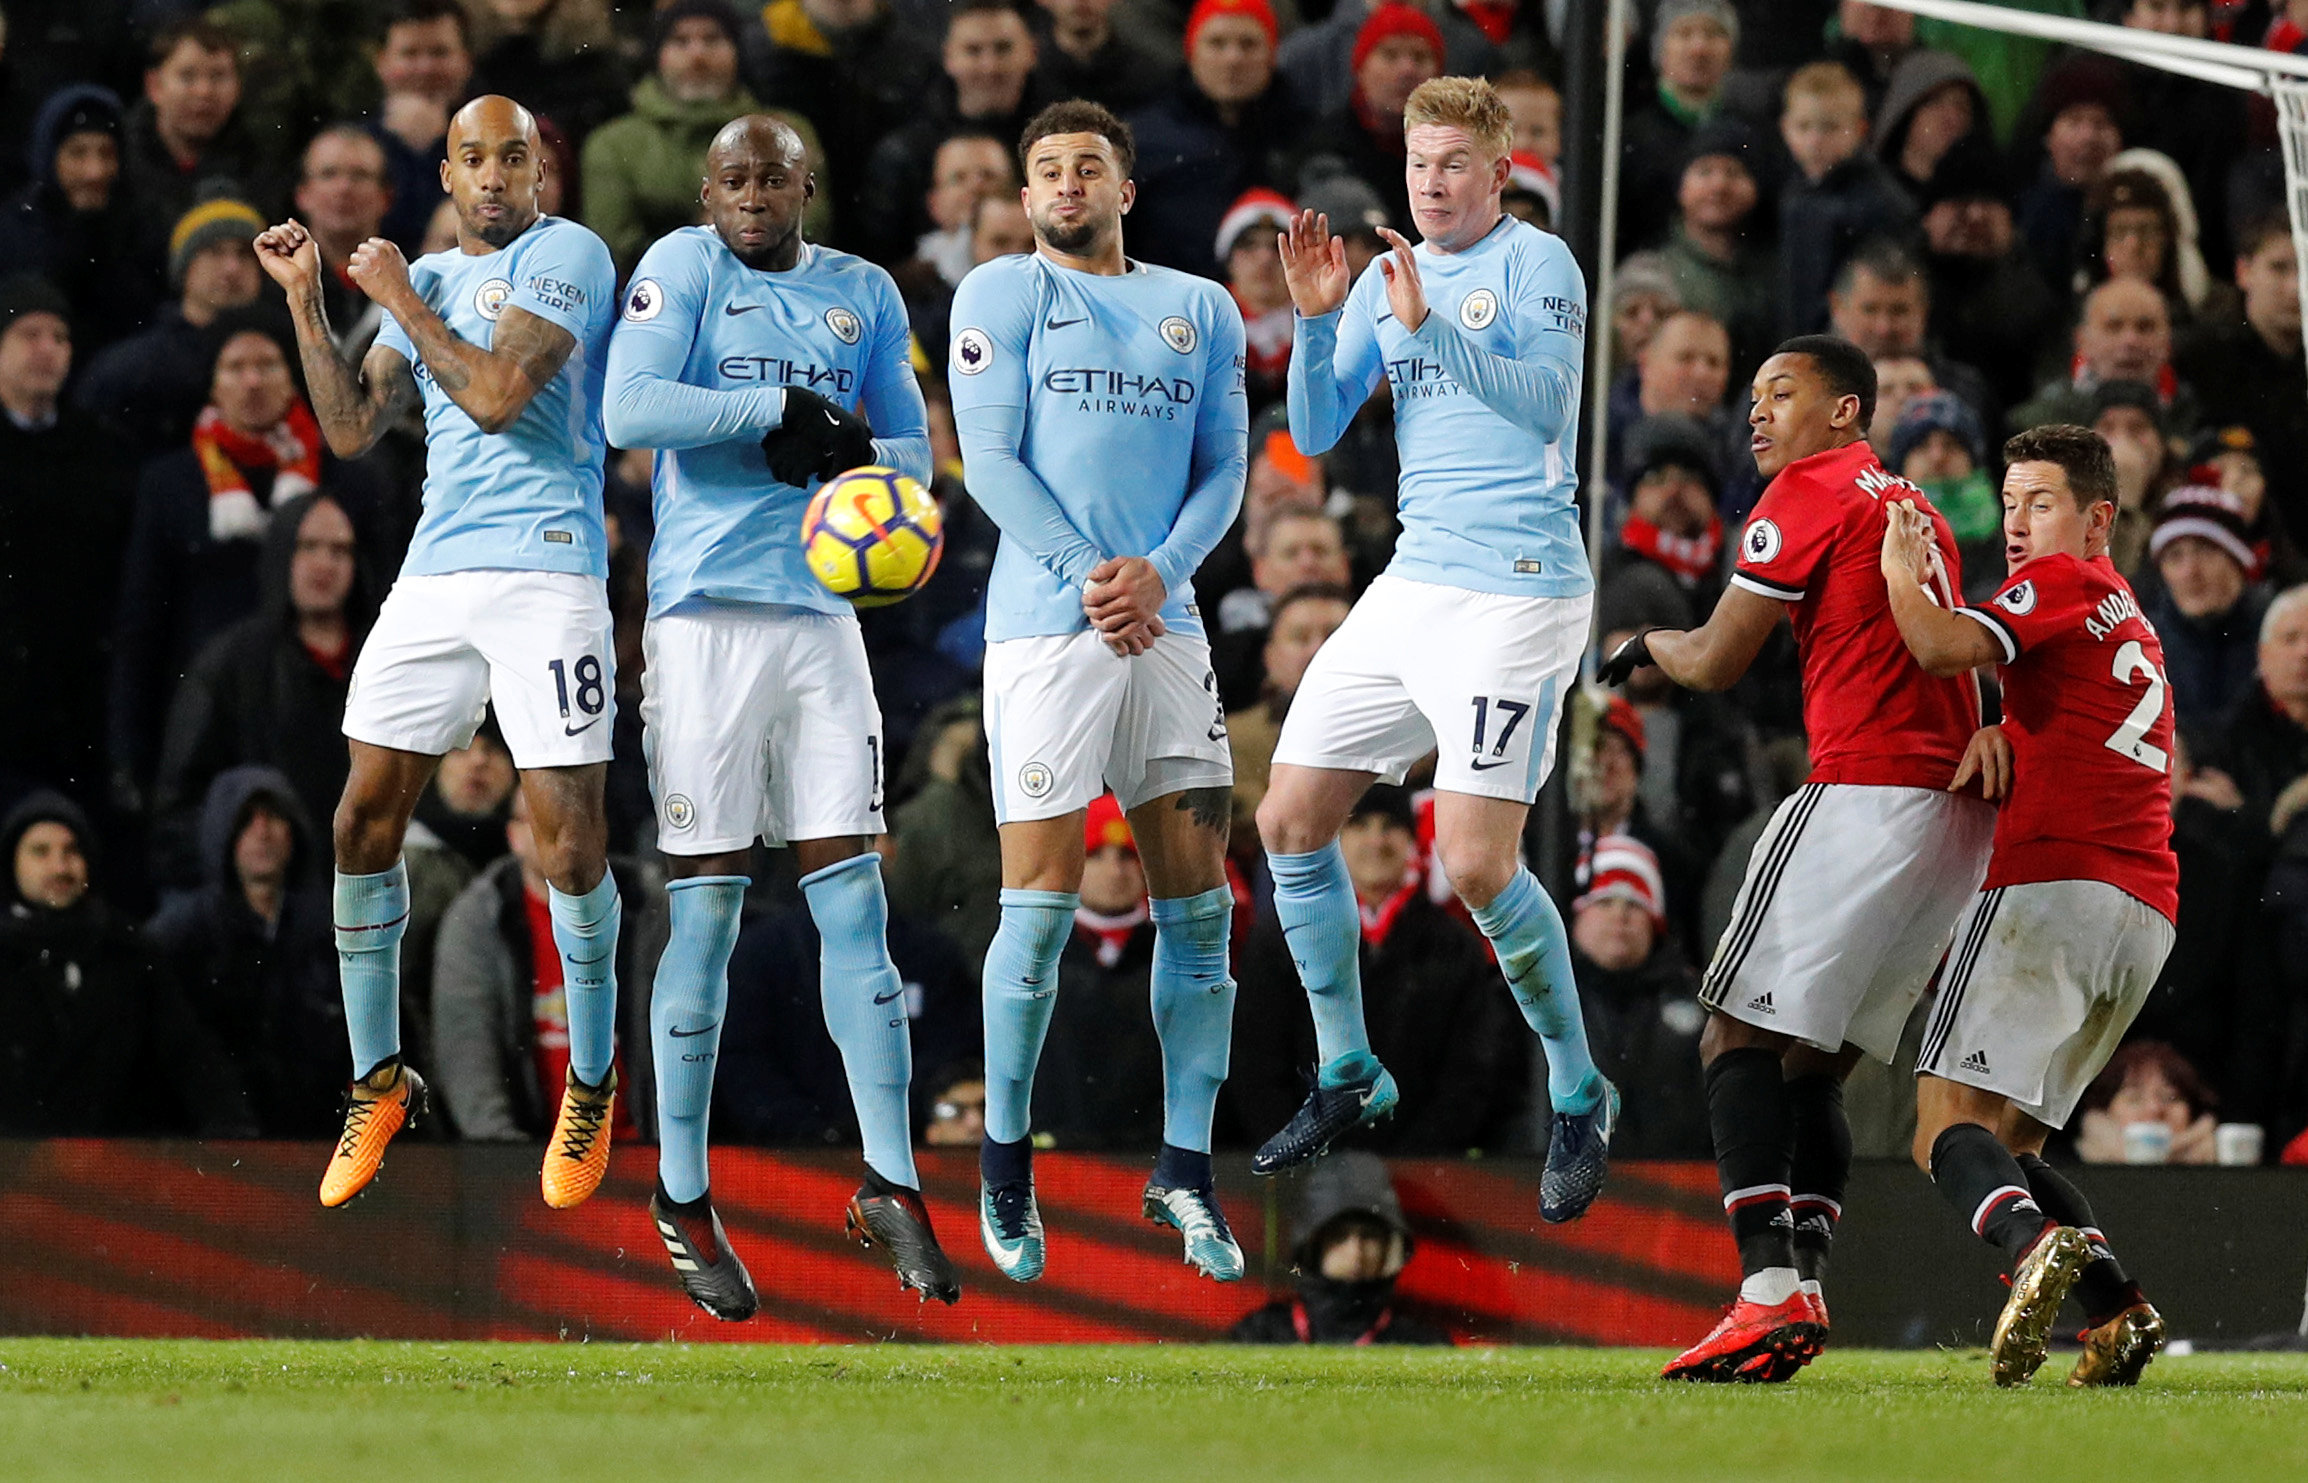 Manchester, Patinage, Ronaldo : les 10 images fortes du week-end